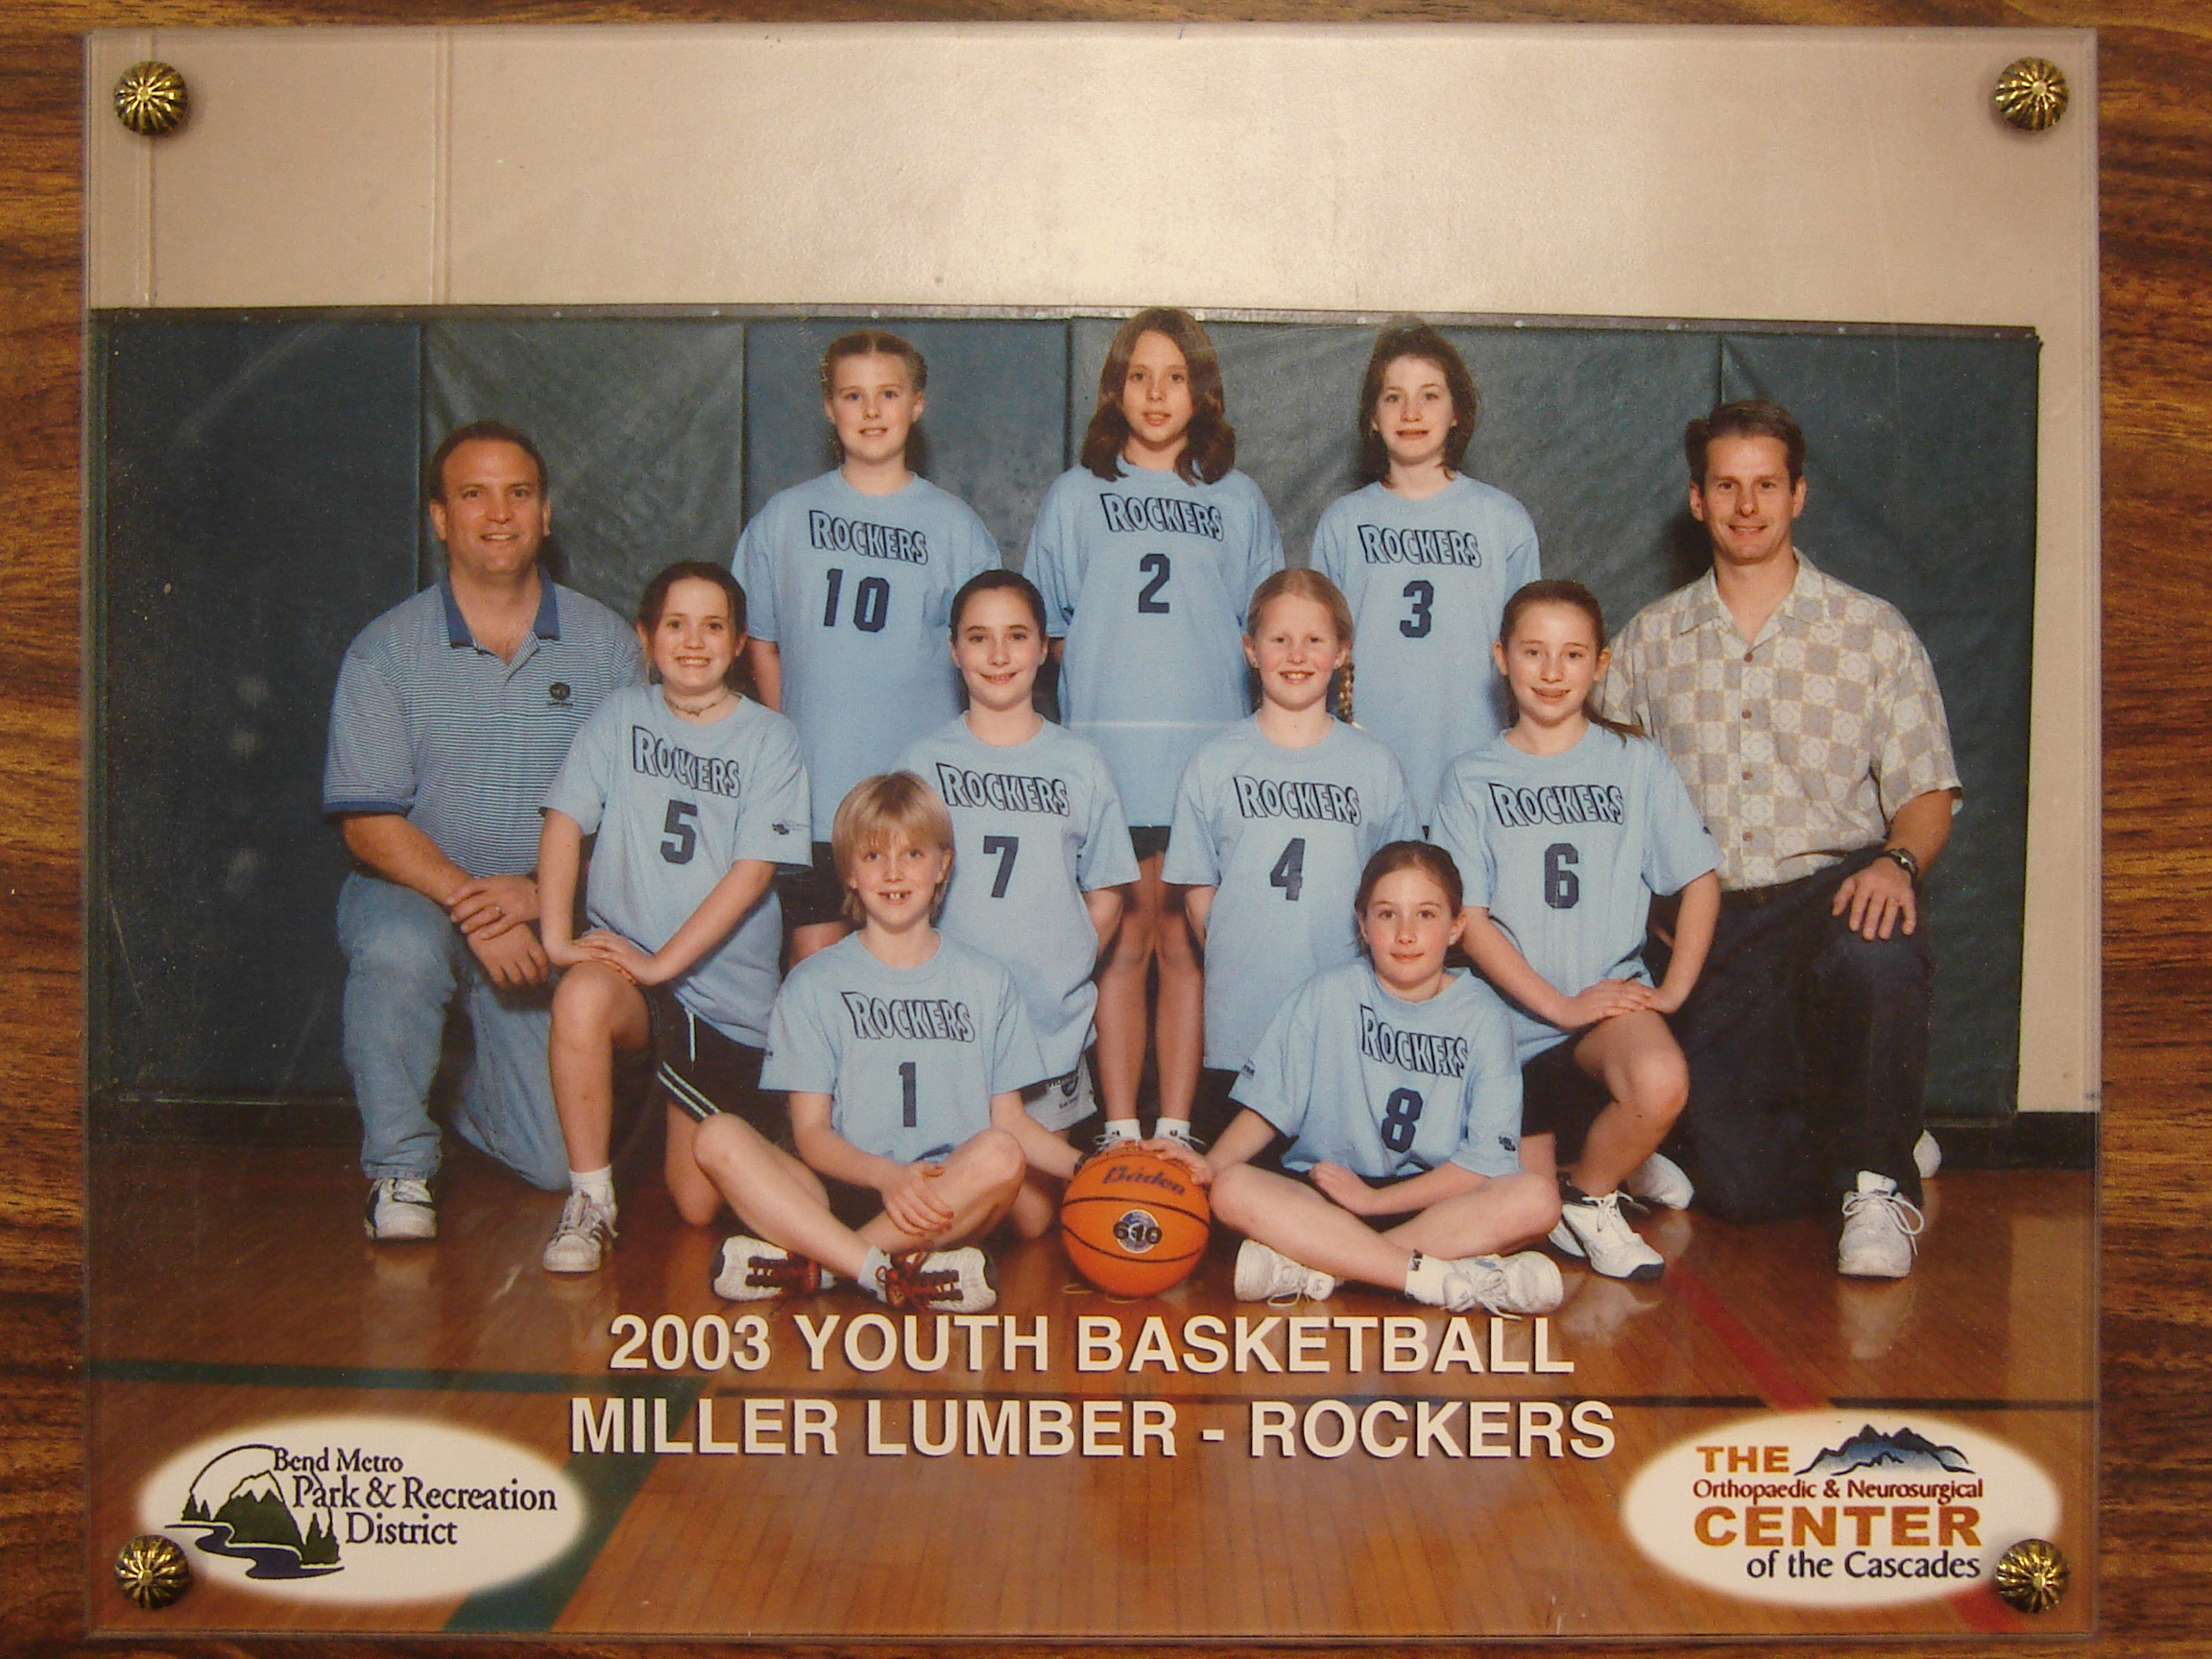 Not only did Miller Lumber sponsor this 2003 girls' basketball team, but President Charley Miller coached as well.